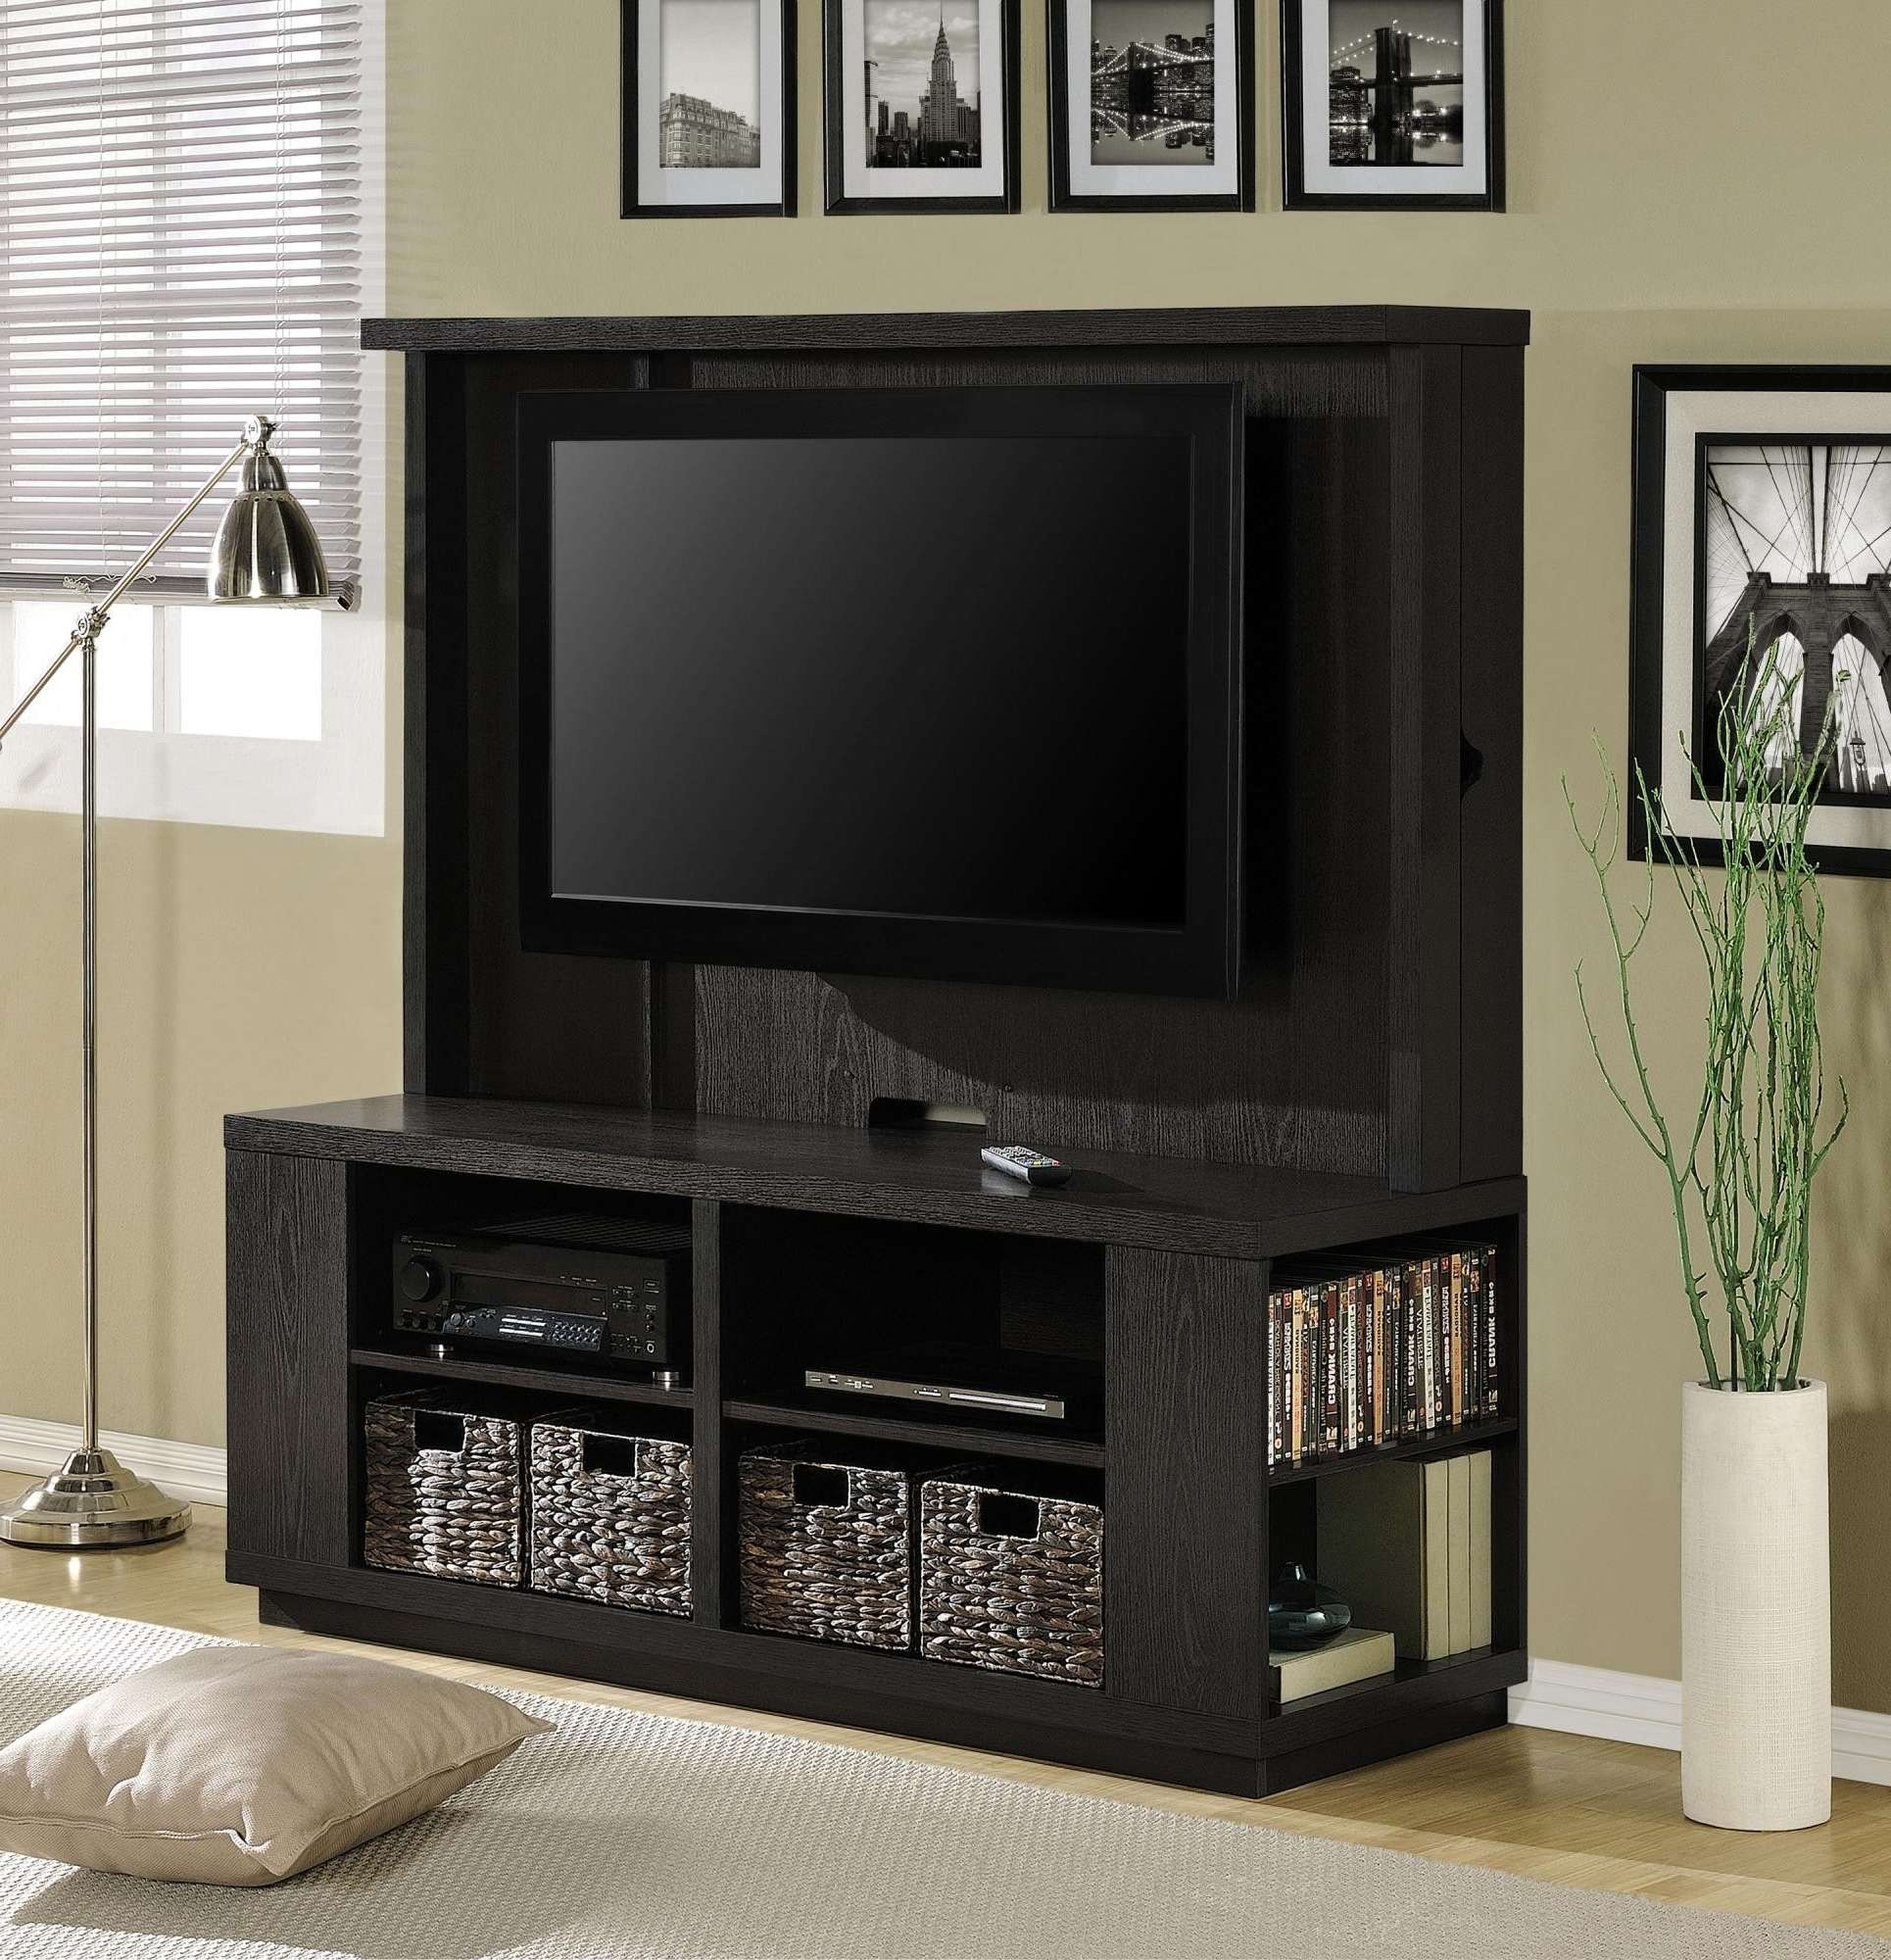 Shelves : Awesome Small Black Wall Mounted Tv Stand With Storage Inside Tv Cabinets With Storage (View 6 of 20)